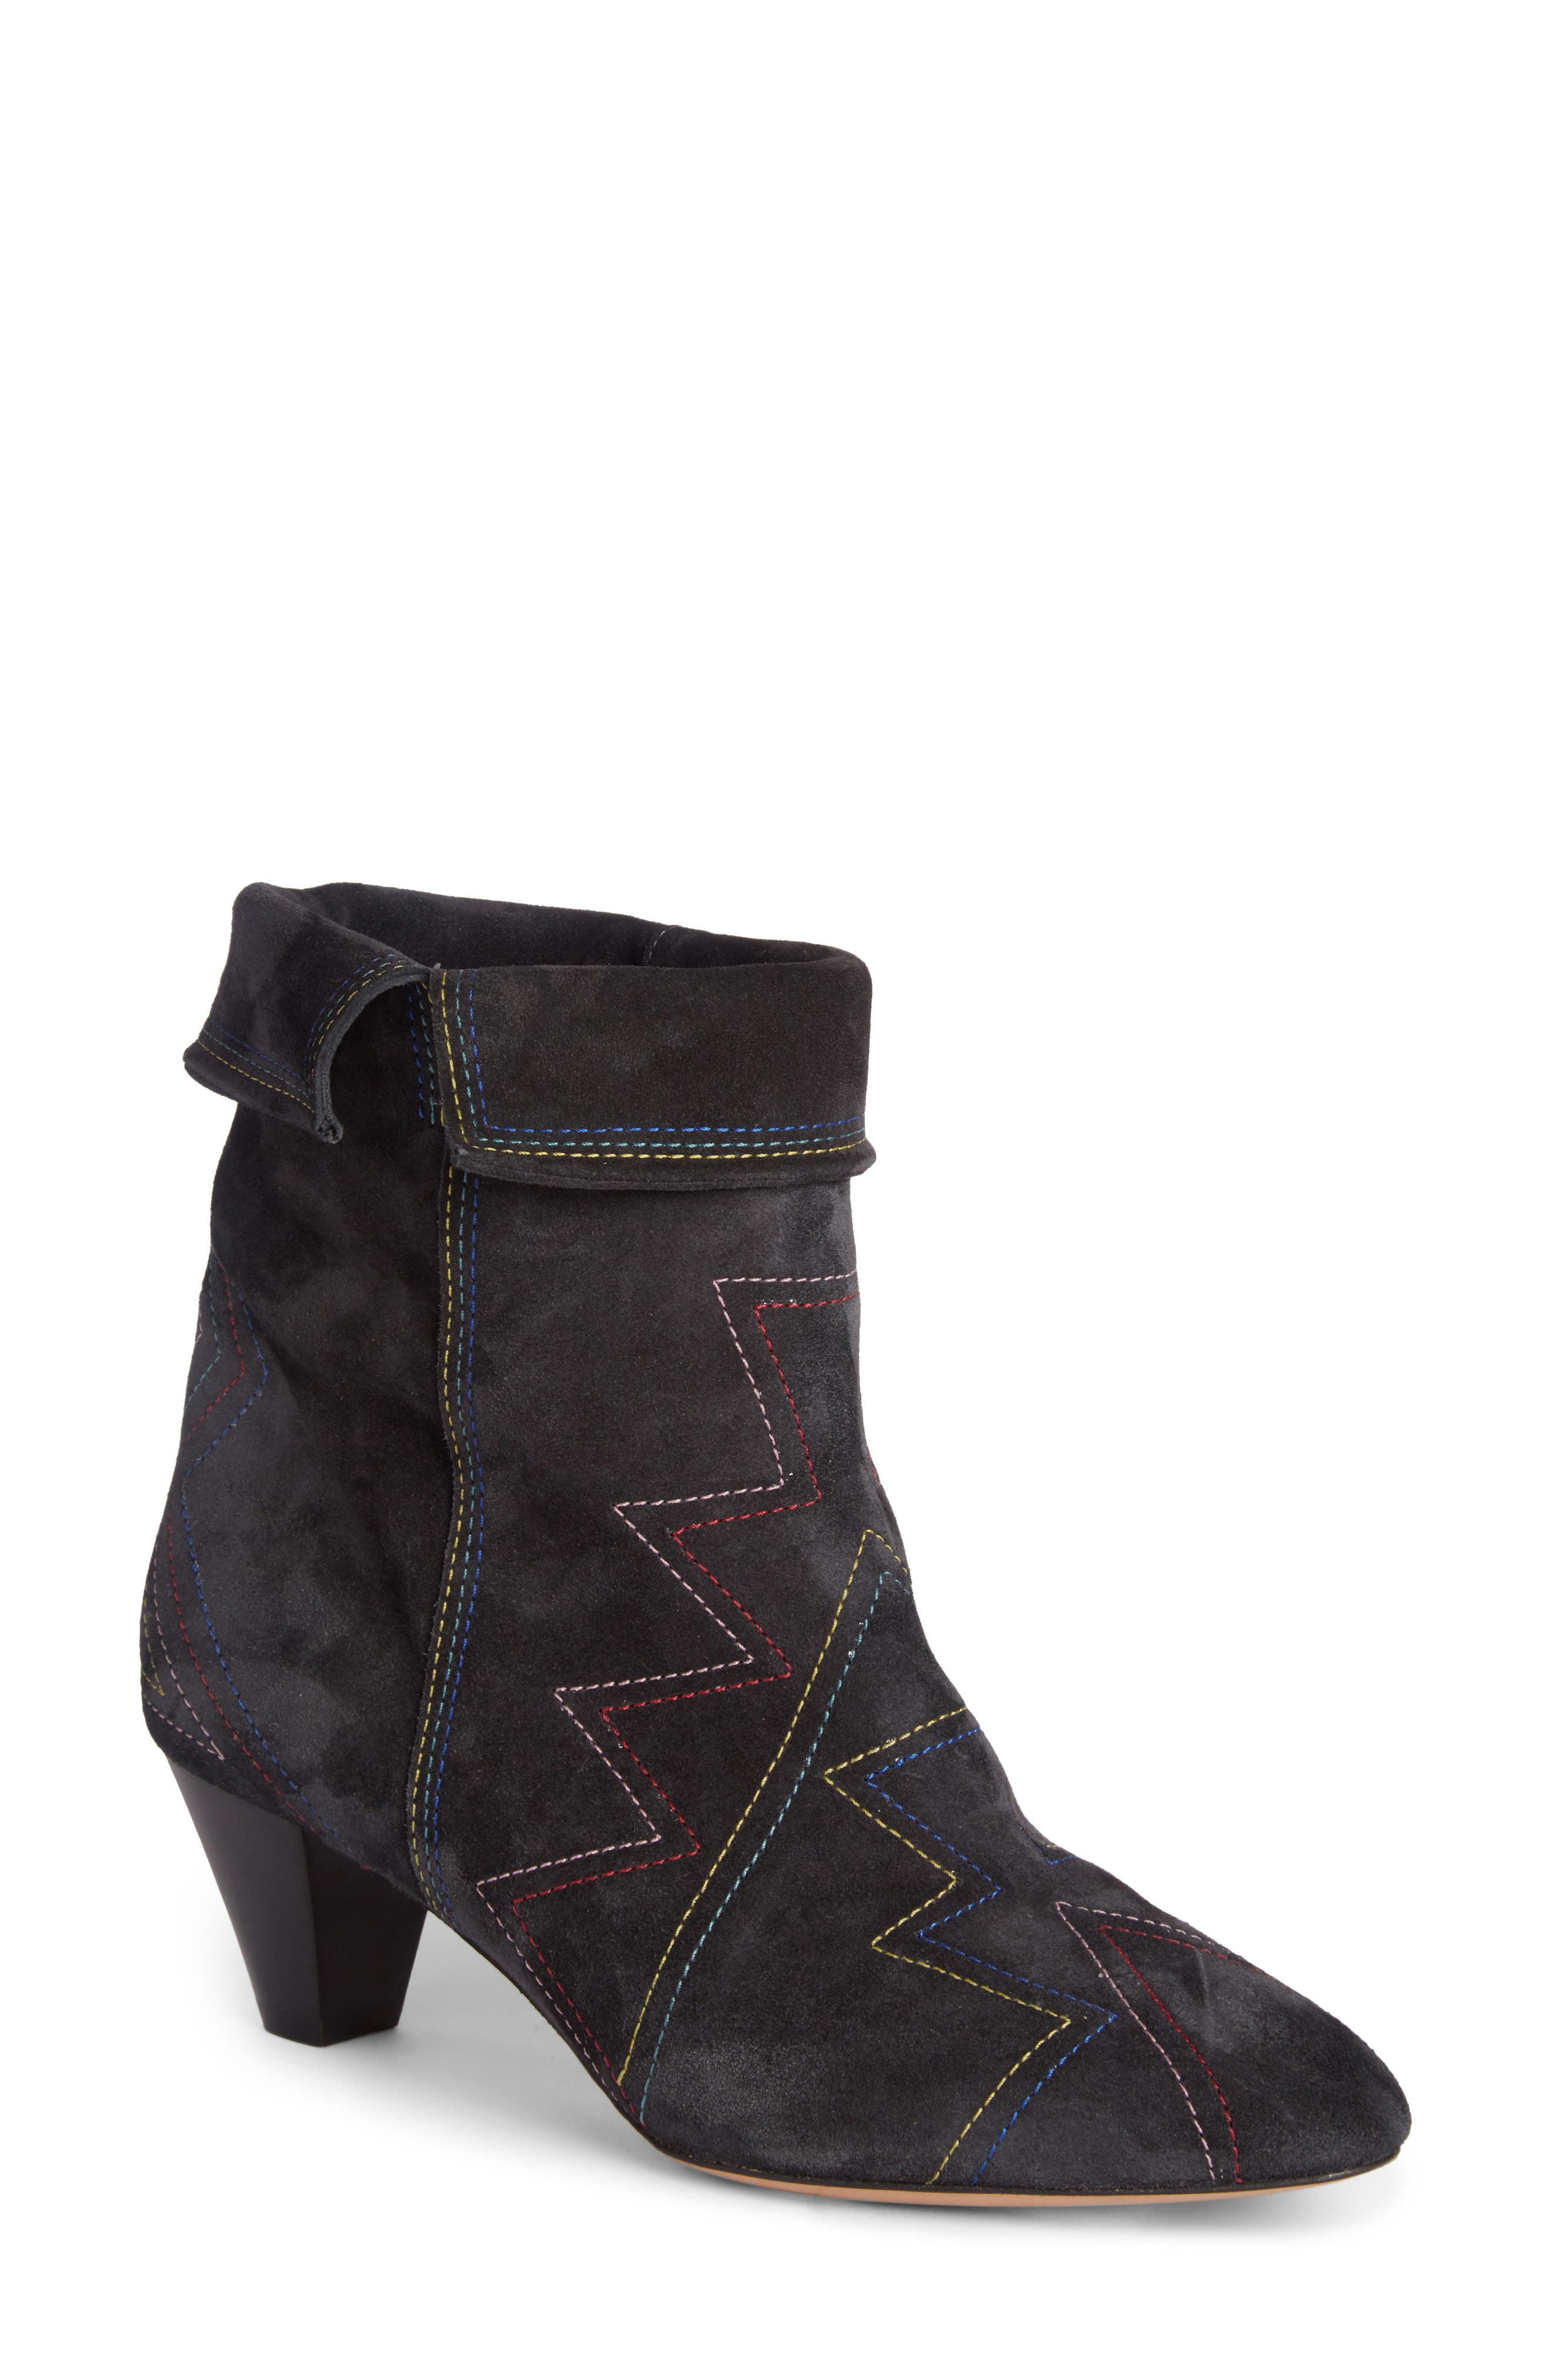 Alternate Image 1 Selected - Isabel Marant Dyna Topstitched Boot (Women)